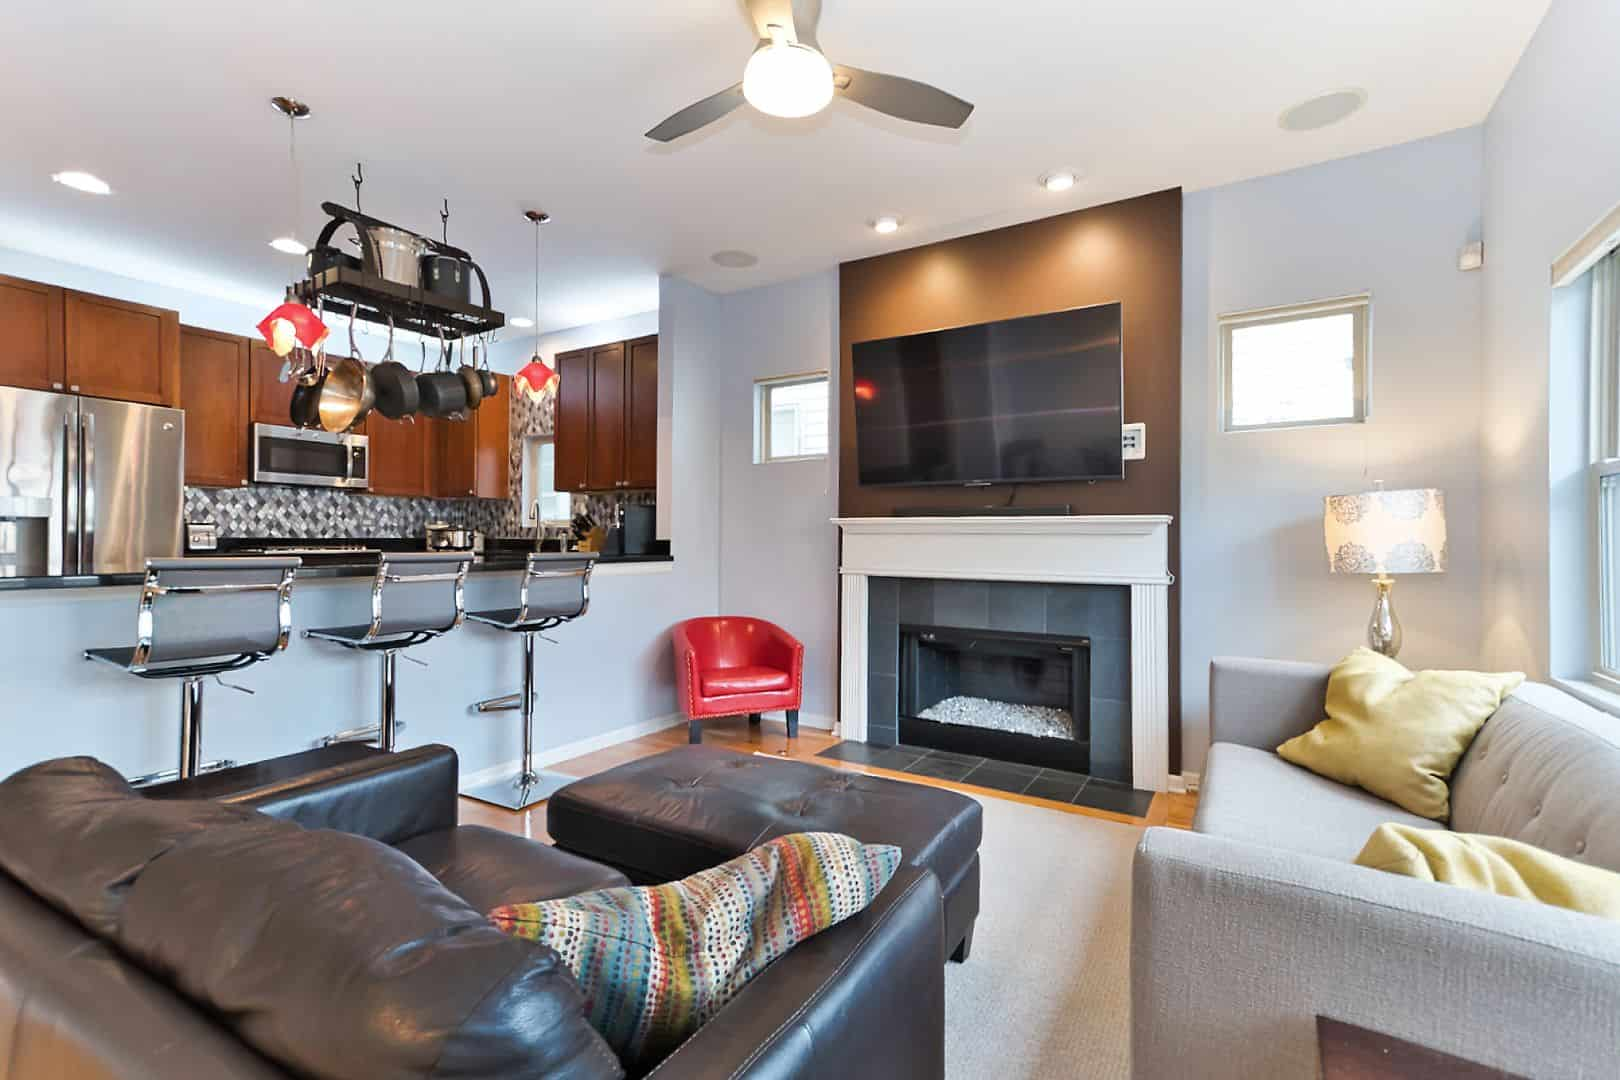 1821 North Talman Ave - West Bucktown Home - Family Room and Kitchen